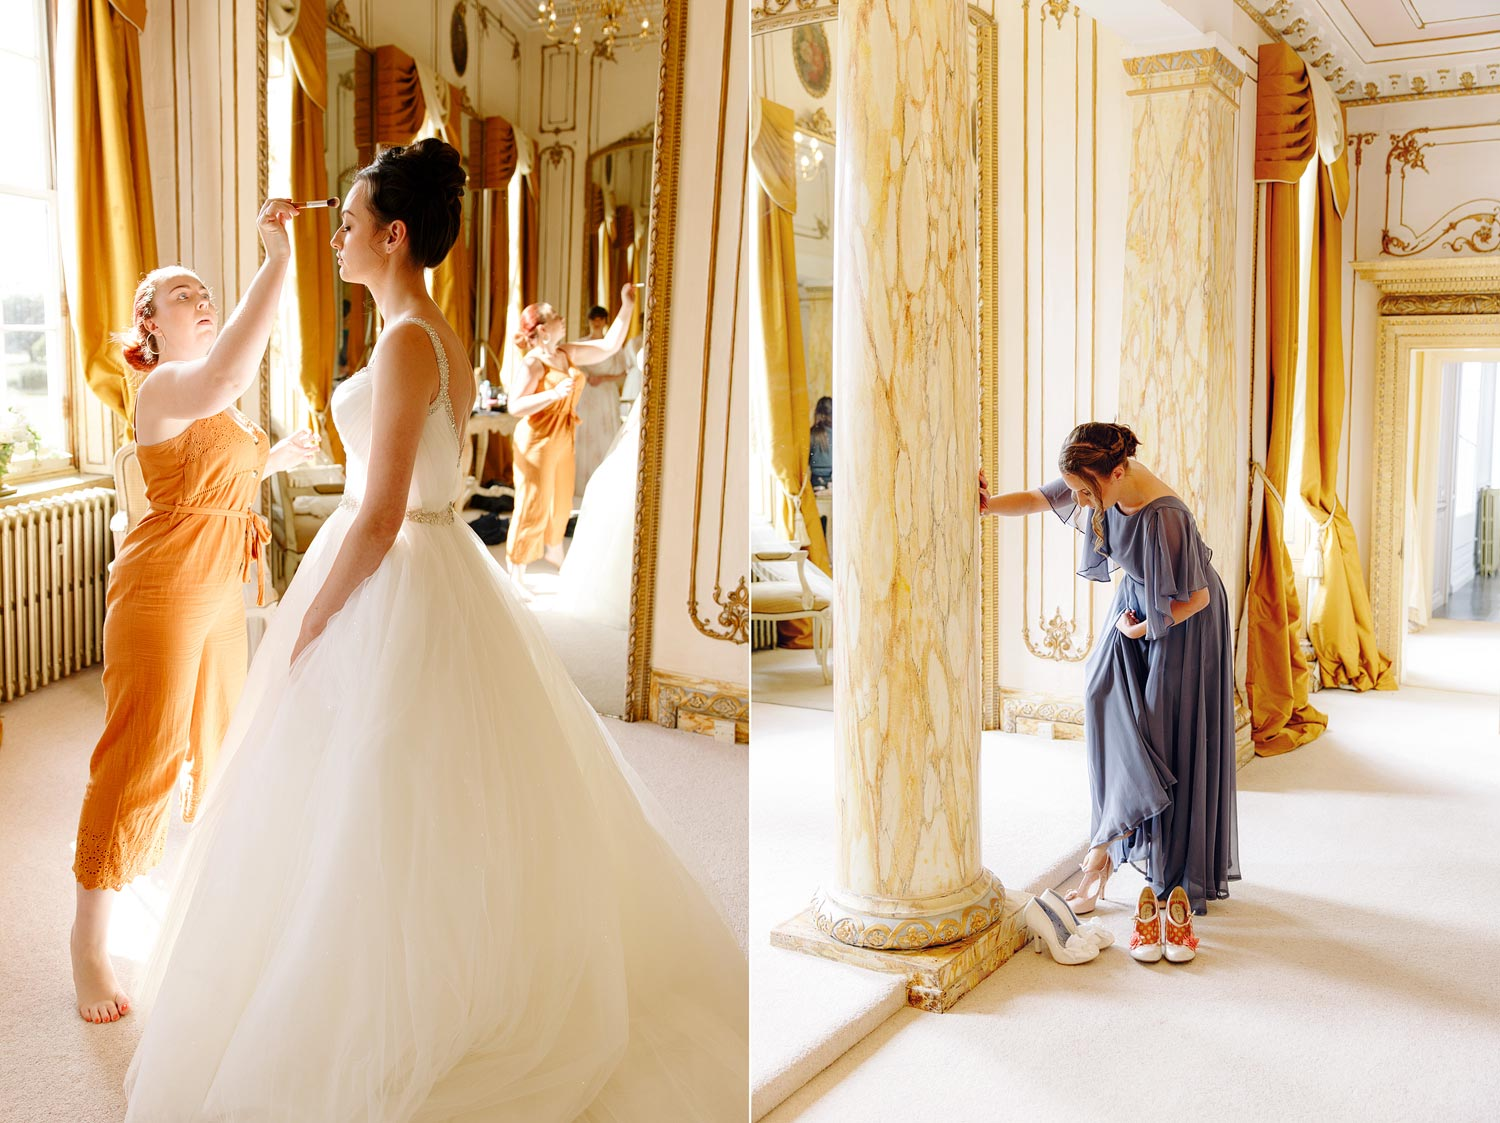 The sumptuous bridal prep room at Gosfield Hall